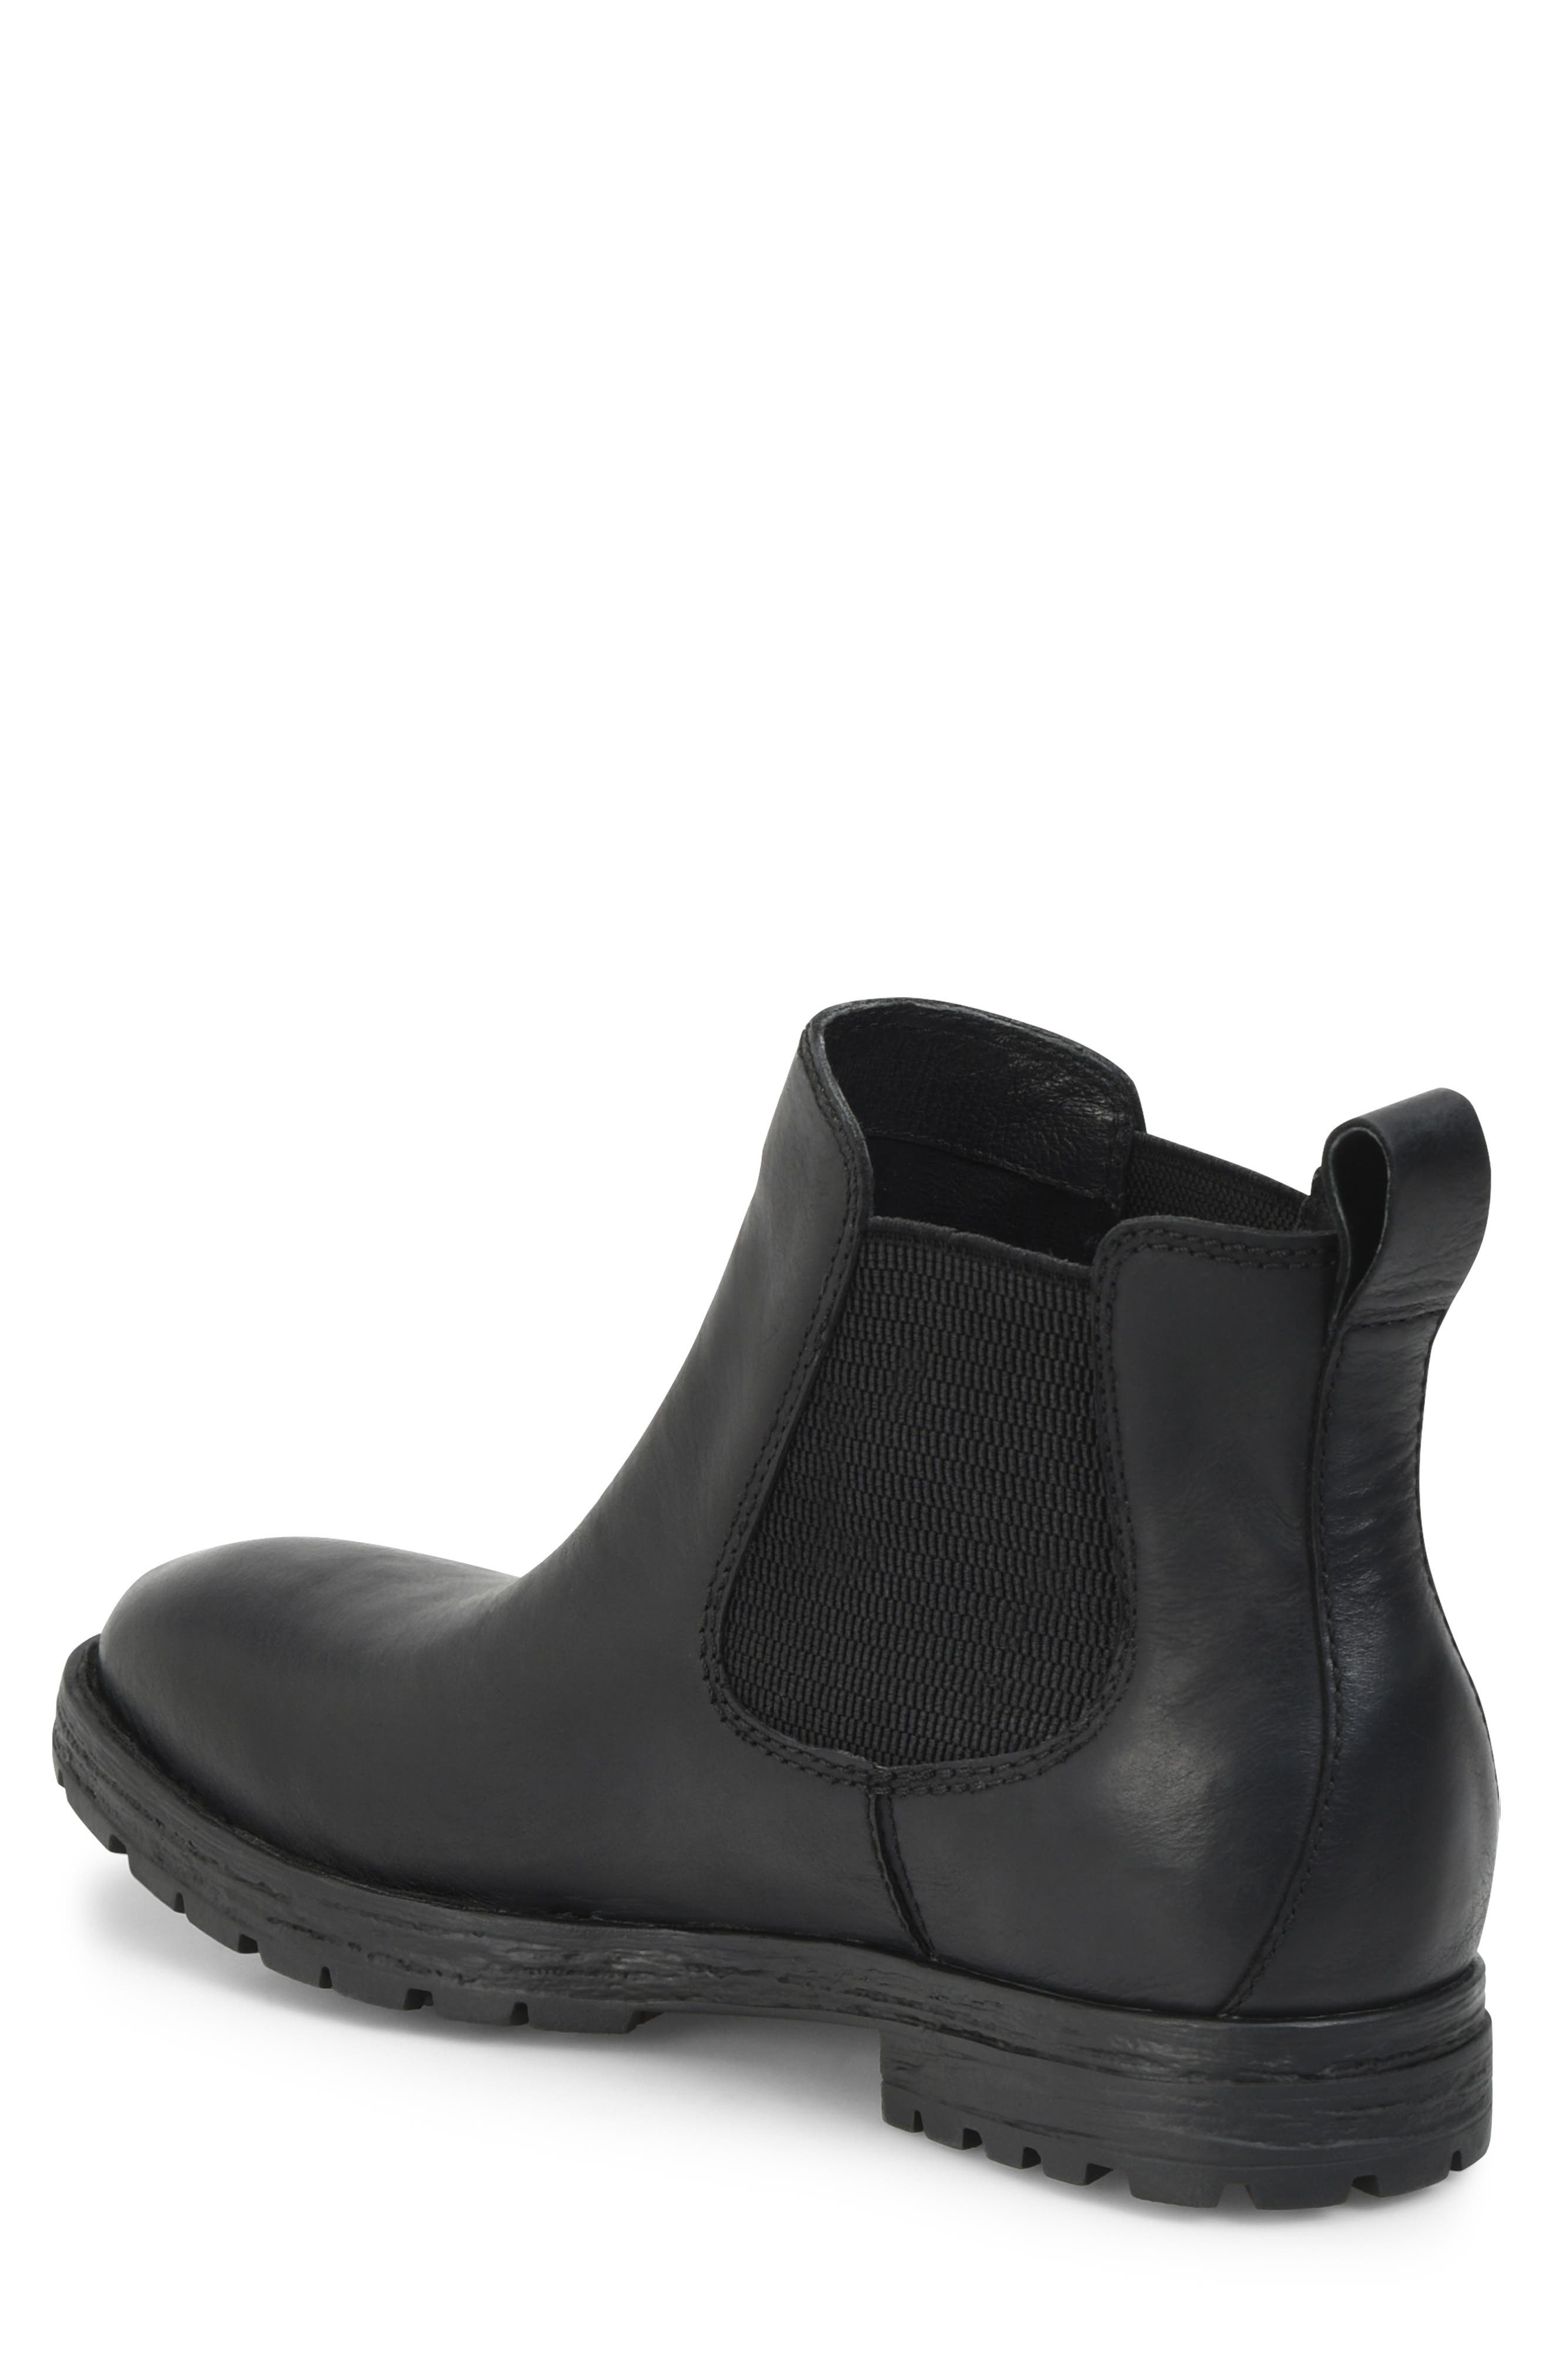 Pike Mid Waterproof Chelsea Boot,                             Alternate thumbnail 2, color,                             BLACK LEATHER